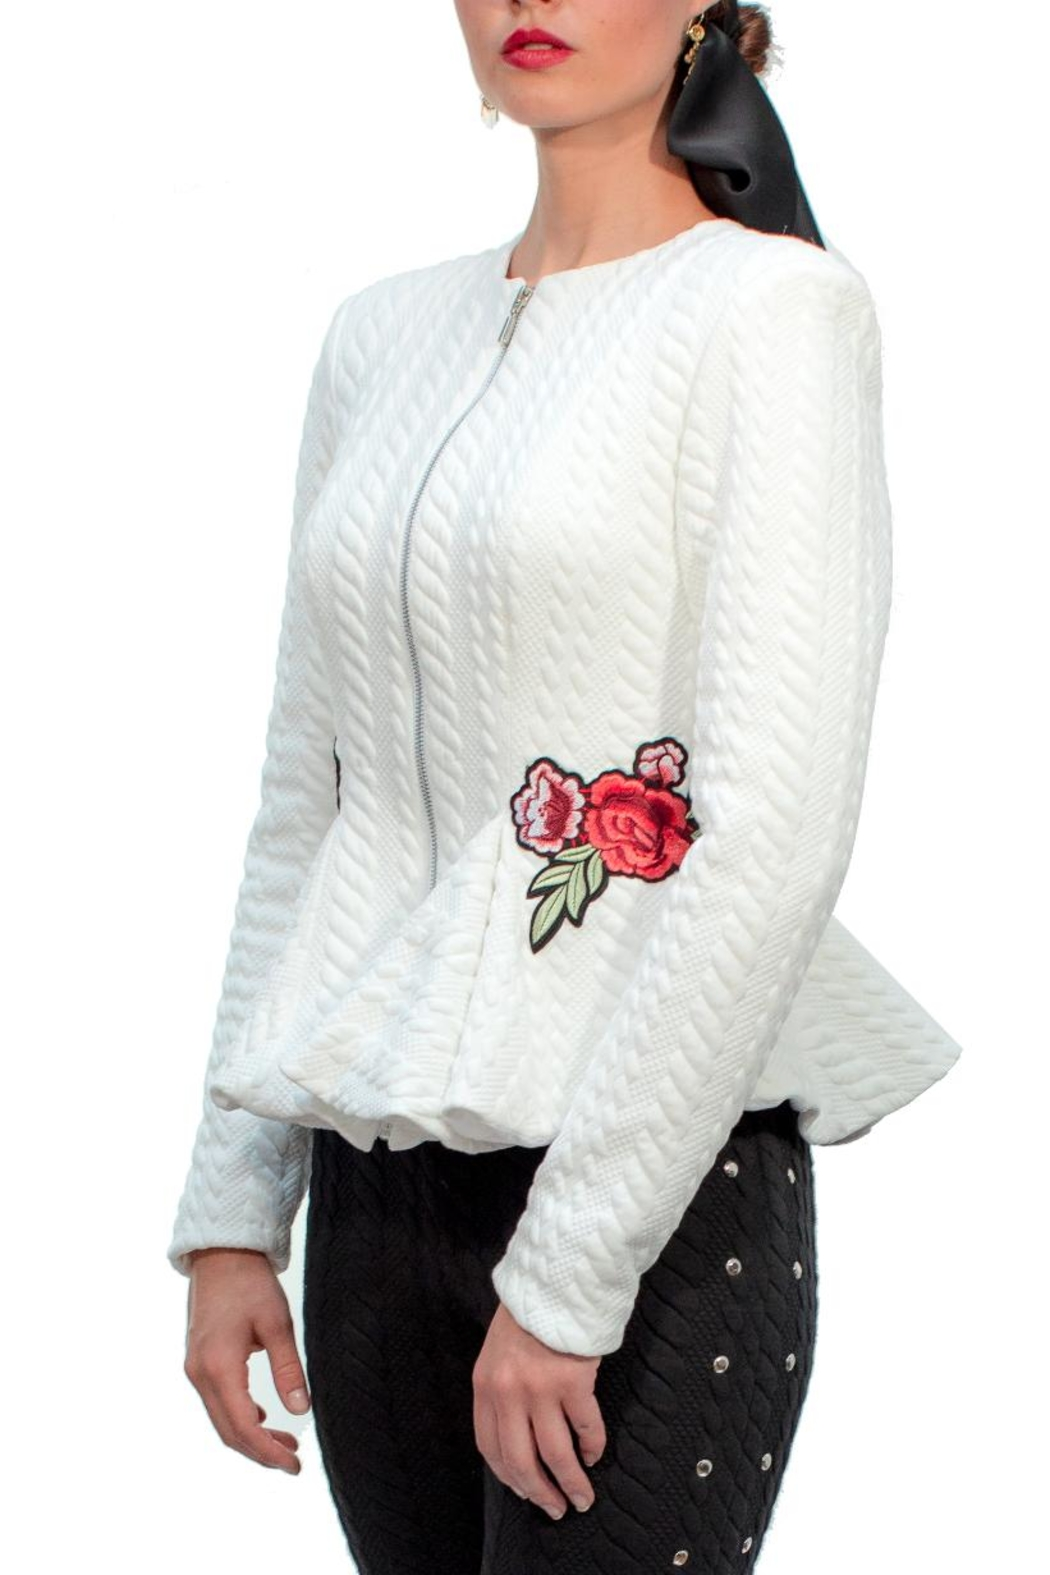 e2122253637 Viesca y Viesca Embroidered Jacket from Mexico — Shoptiques